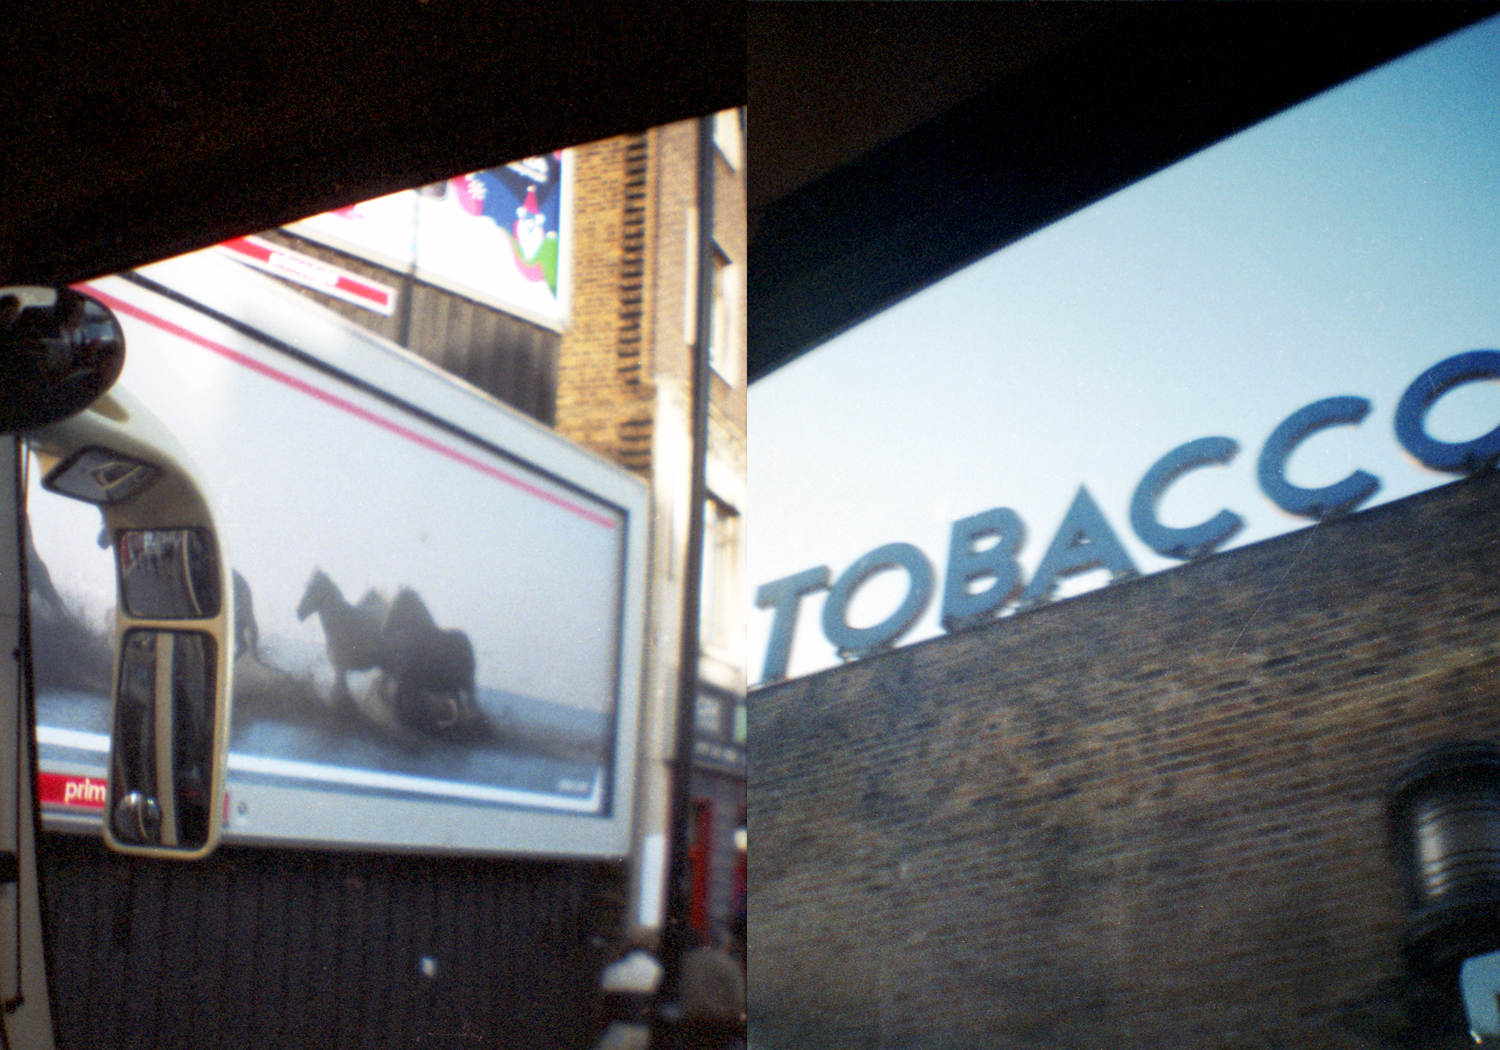 The Tobacco Horse (Lomofiles) 2012.